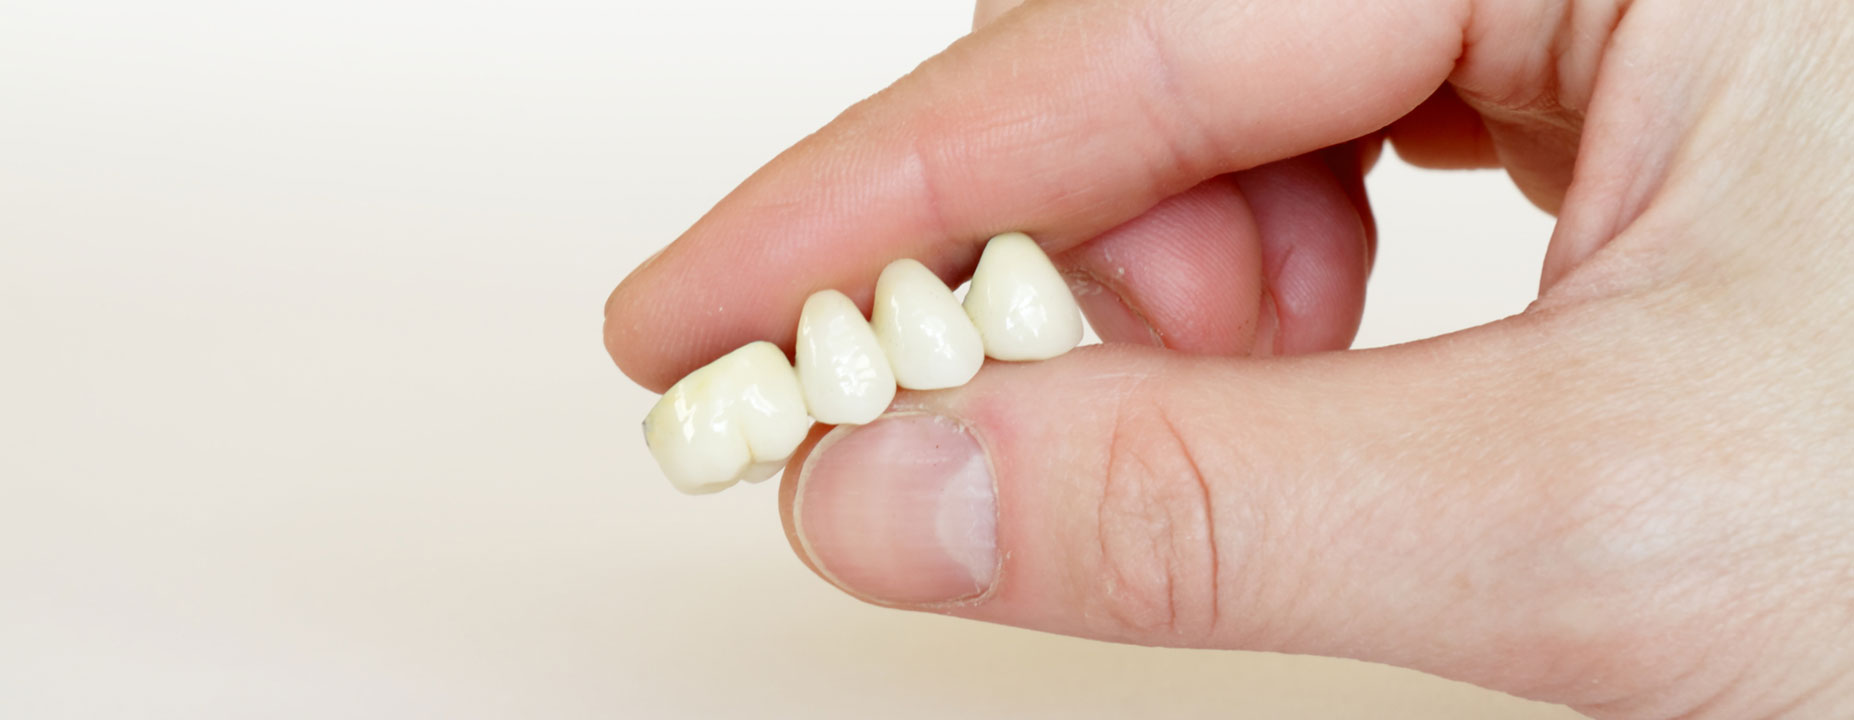 Holding dental crowns by fingers